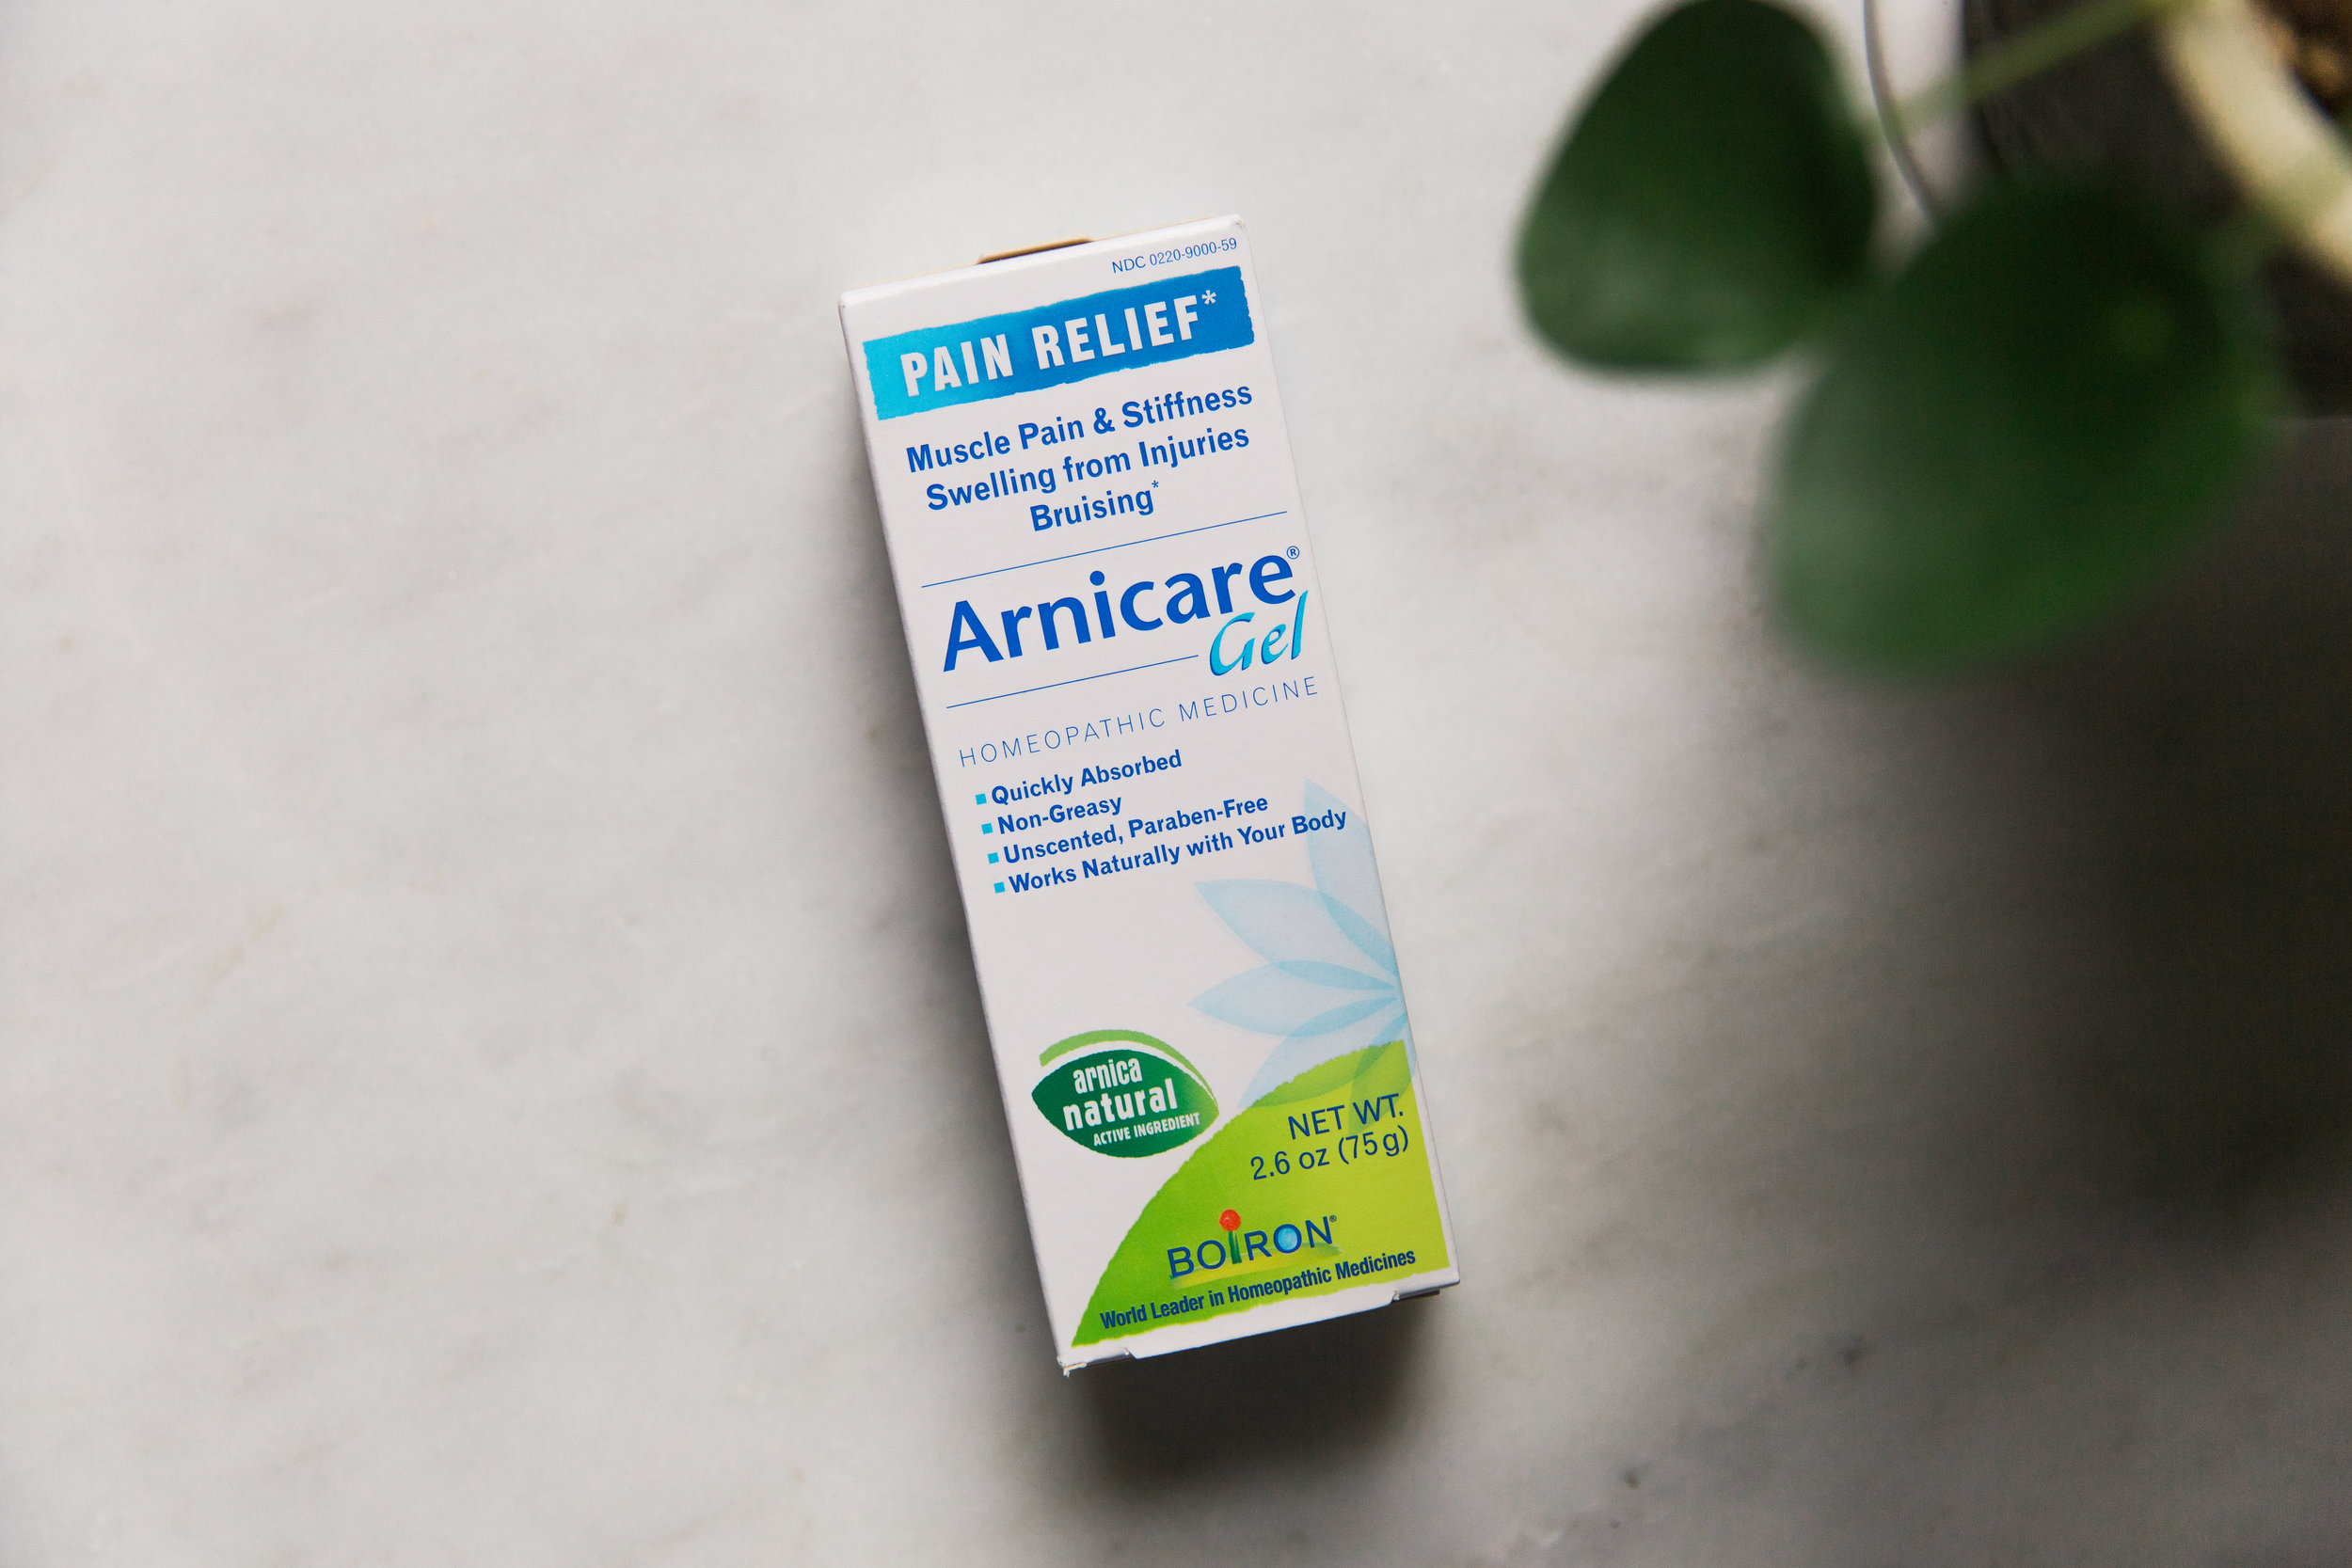 Arnicare gel, $15   Arnicare Gel temporarily relieves muscle pain and stiffness due to minor injuries, overexertion, and falls; reduces pain, swelling, and discoloration from bruises.